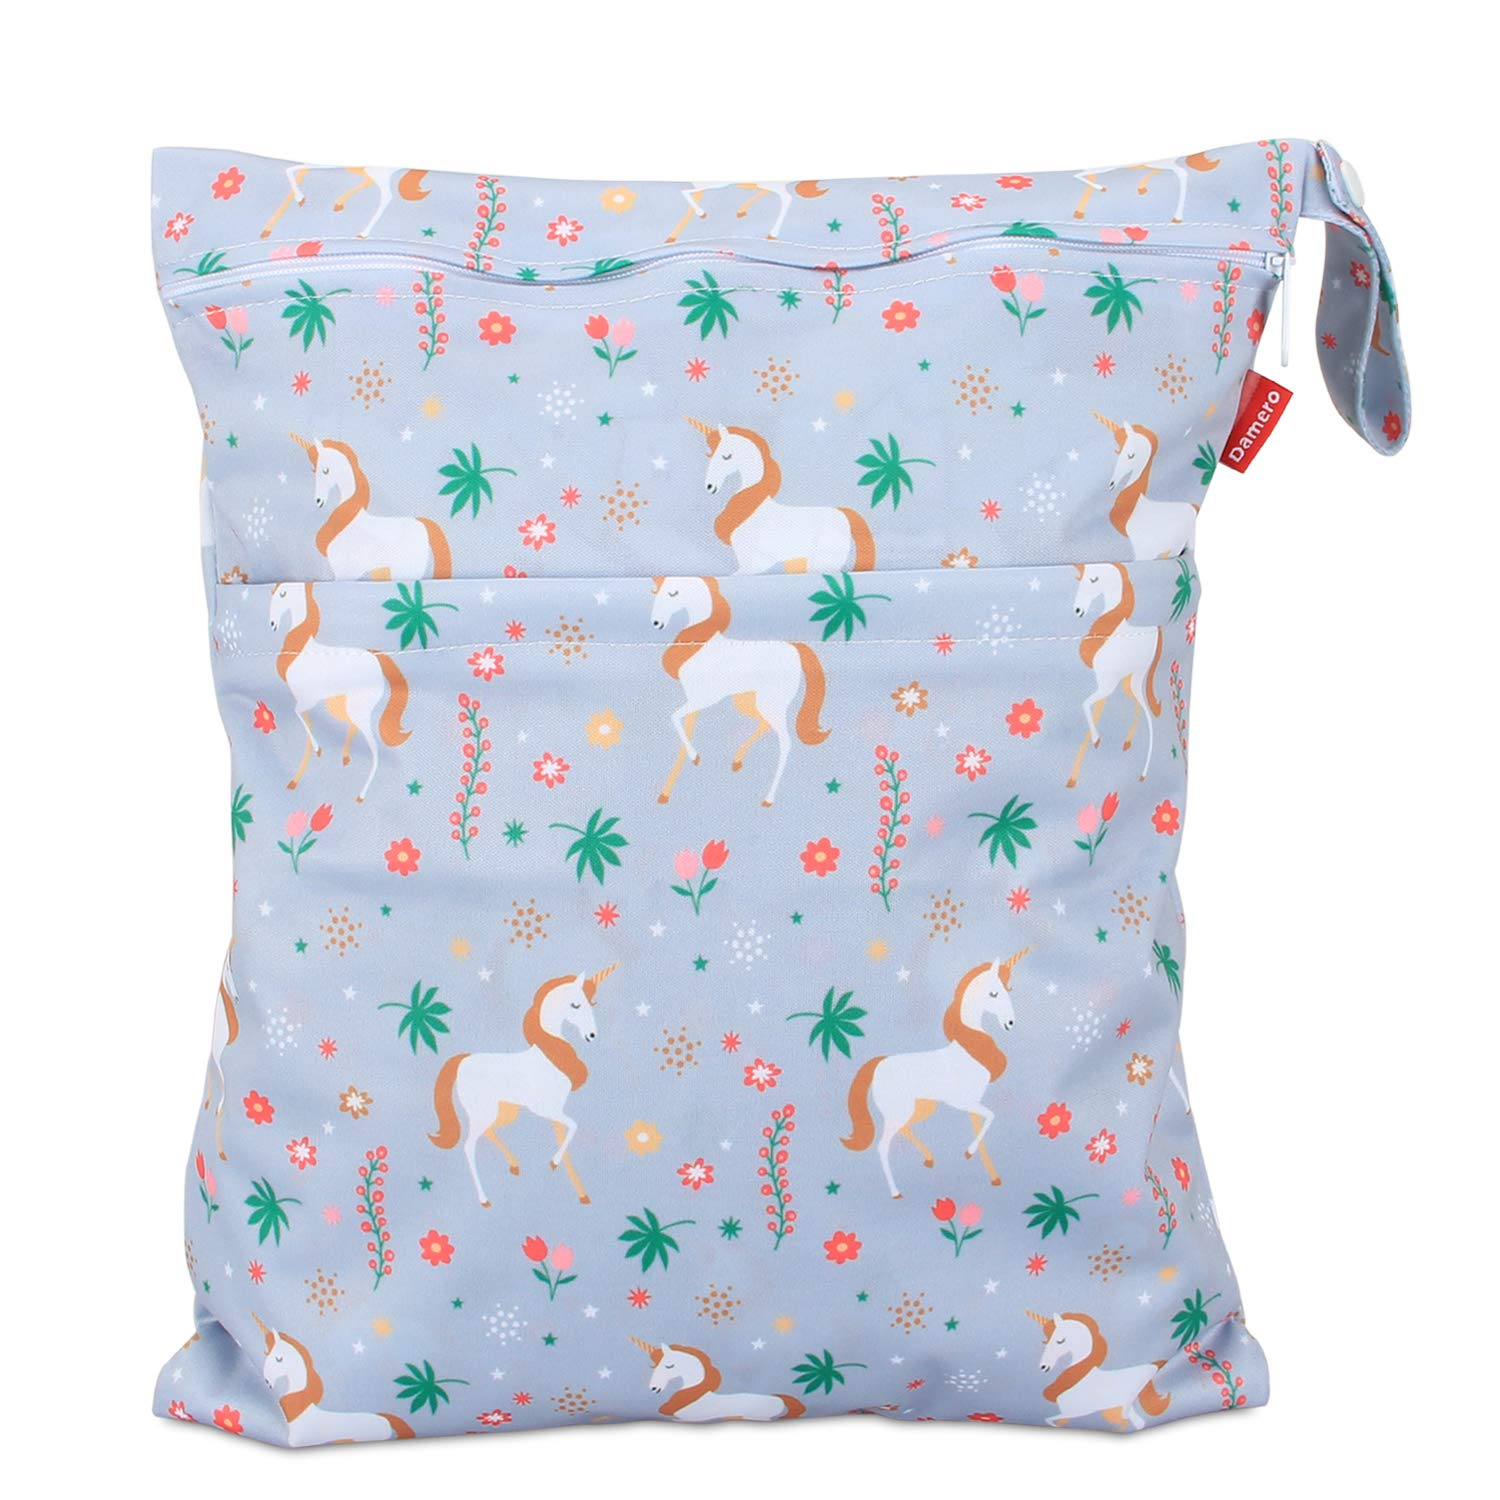 Damero Cloth Diaper Wet Dry Bag with Handle for Swimsuit, Pumping Parts, Wet Clothes and More, Ideal for Travel, Exercise, Daycare, Swimming, Reusable and Water-Resistant (Large,Unicorn)